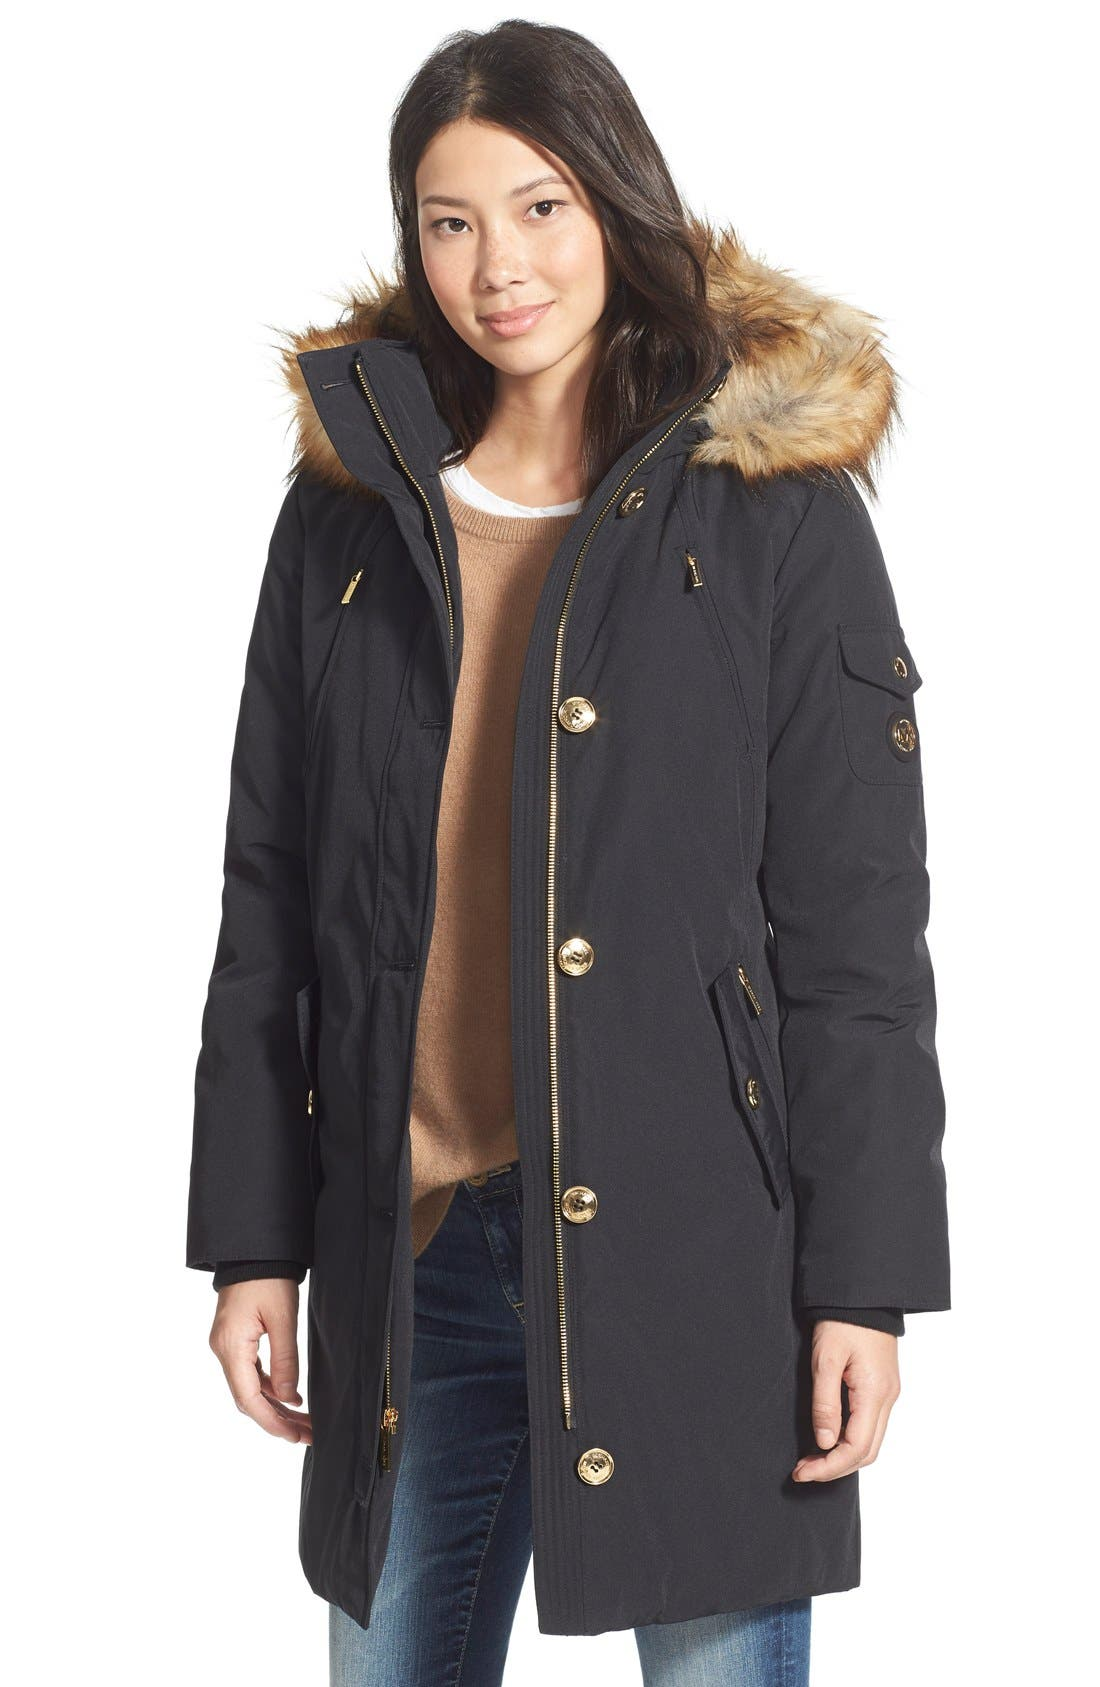 Alternate Image 1 Selected - MICHAEL Michael Kors 'Expedition' Faux Fur Trim Down & Feather Fill Parka